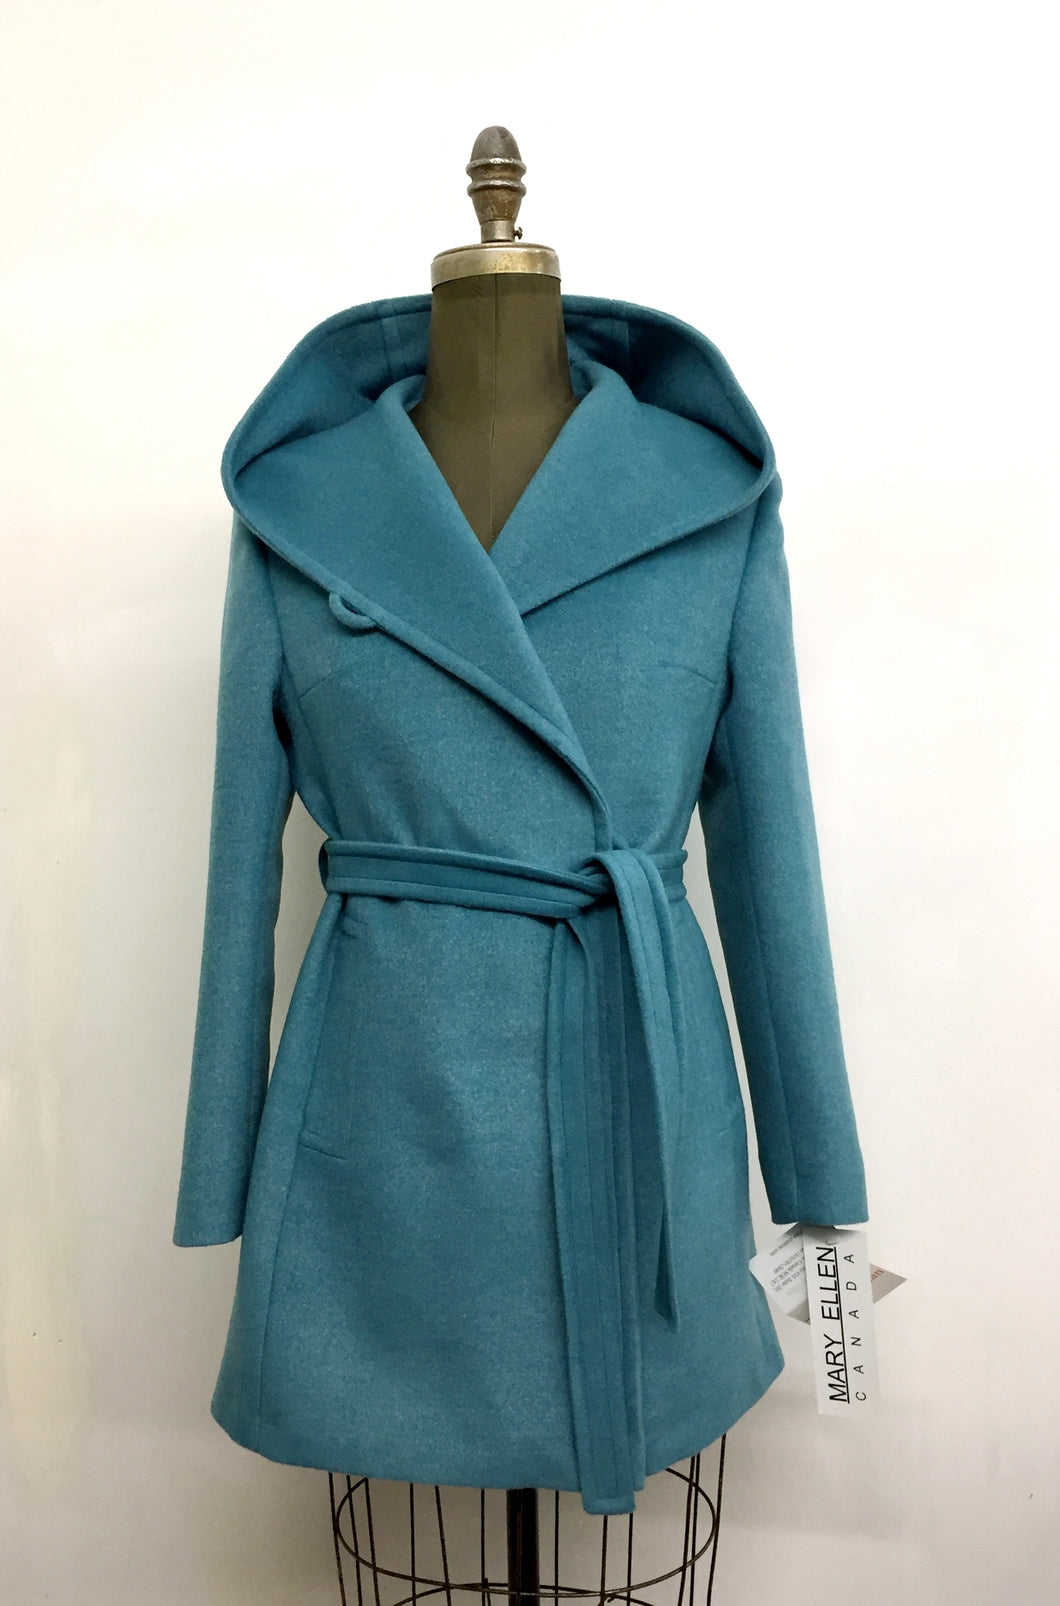 Tiffany Coat - 100% Pure Virgin Wool - Boiled Wool